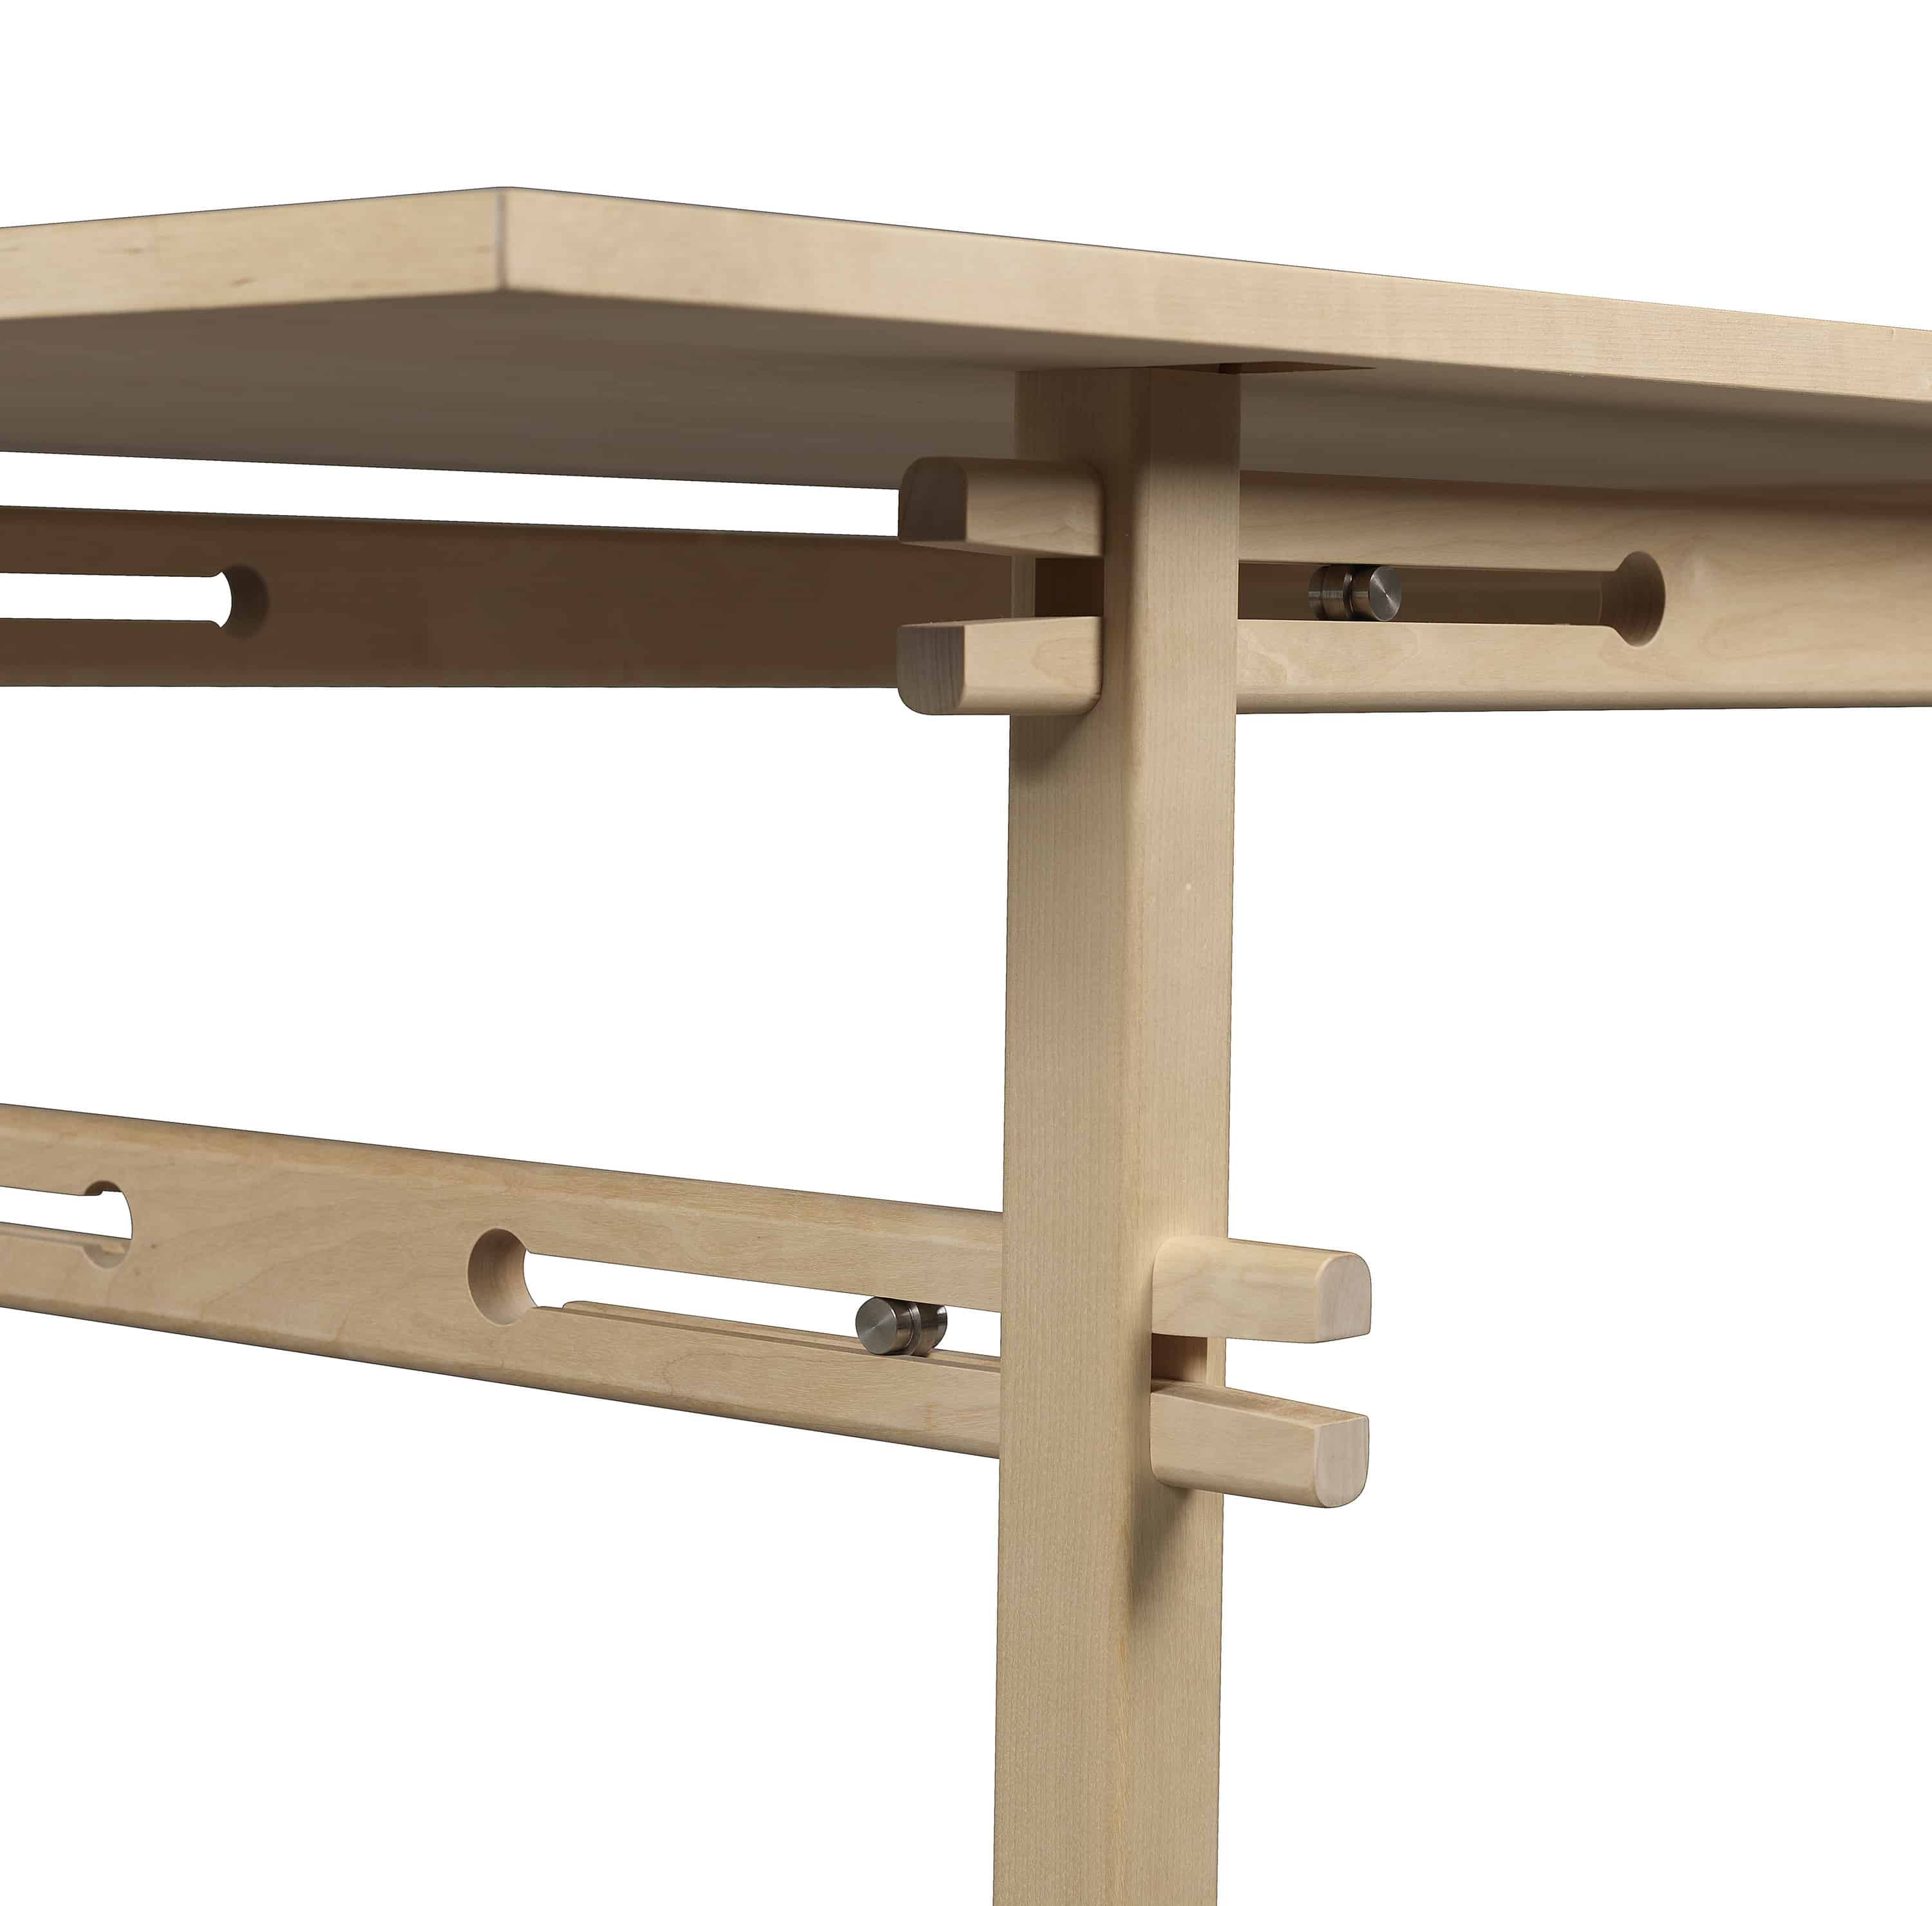 16. Spanna table by Gustav Person